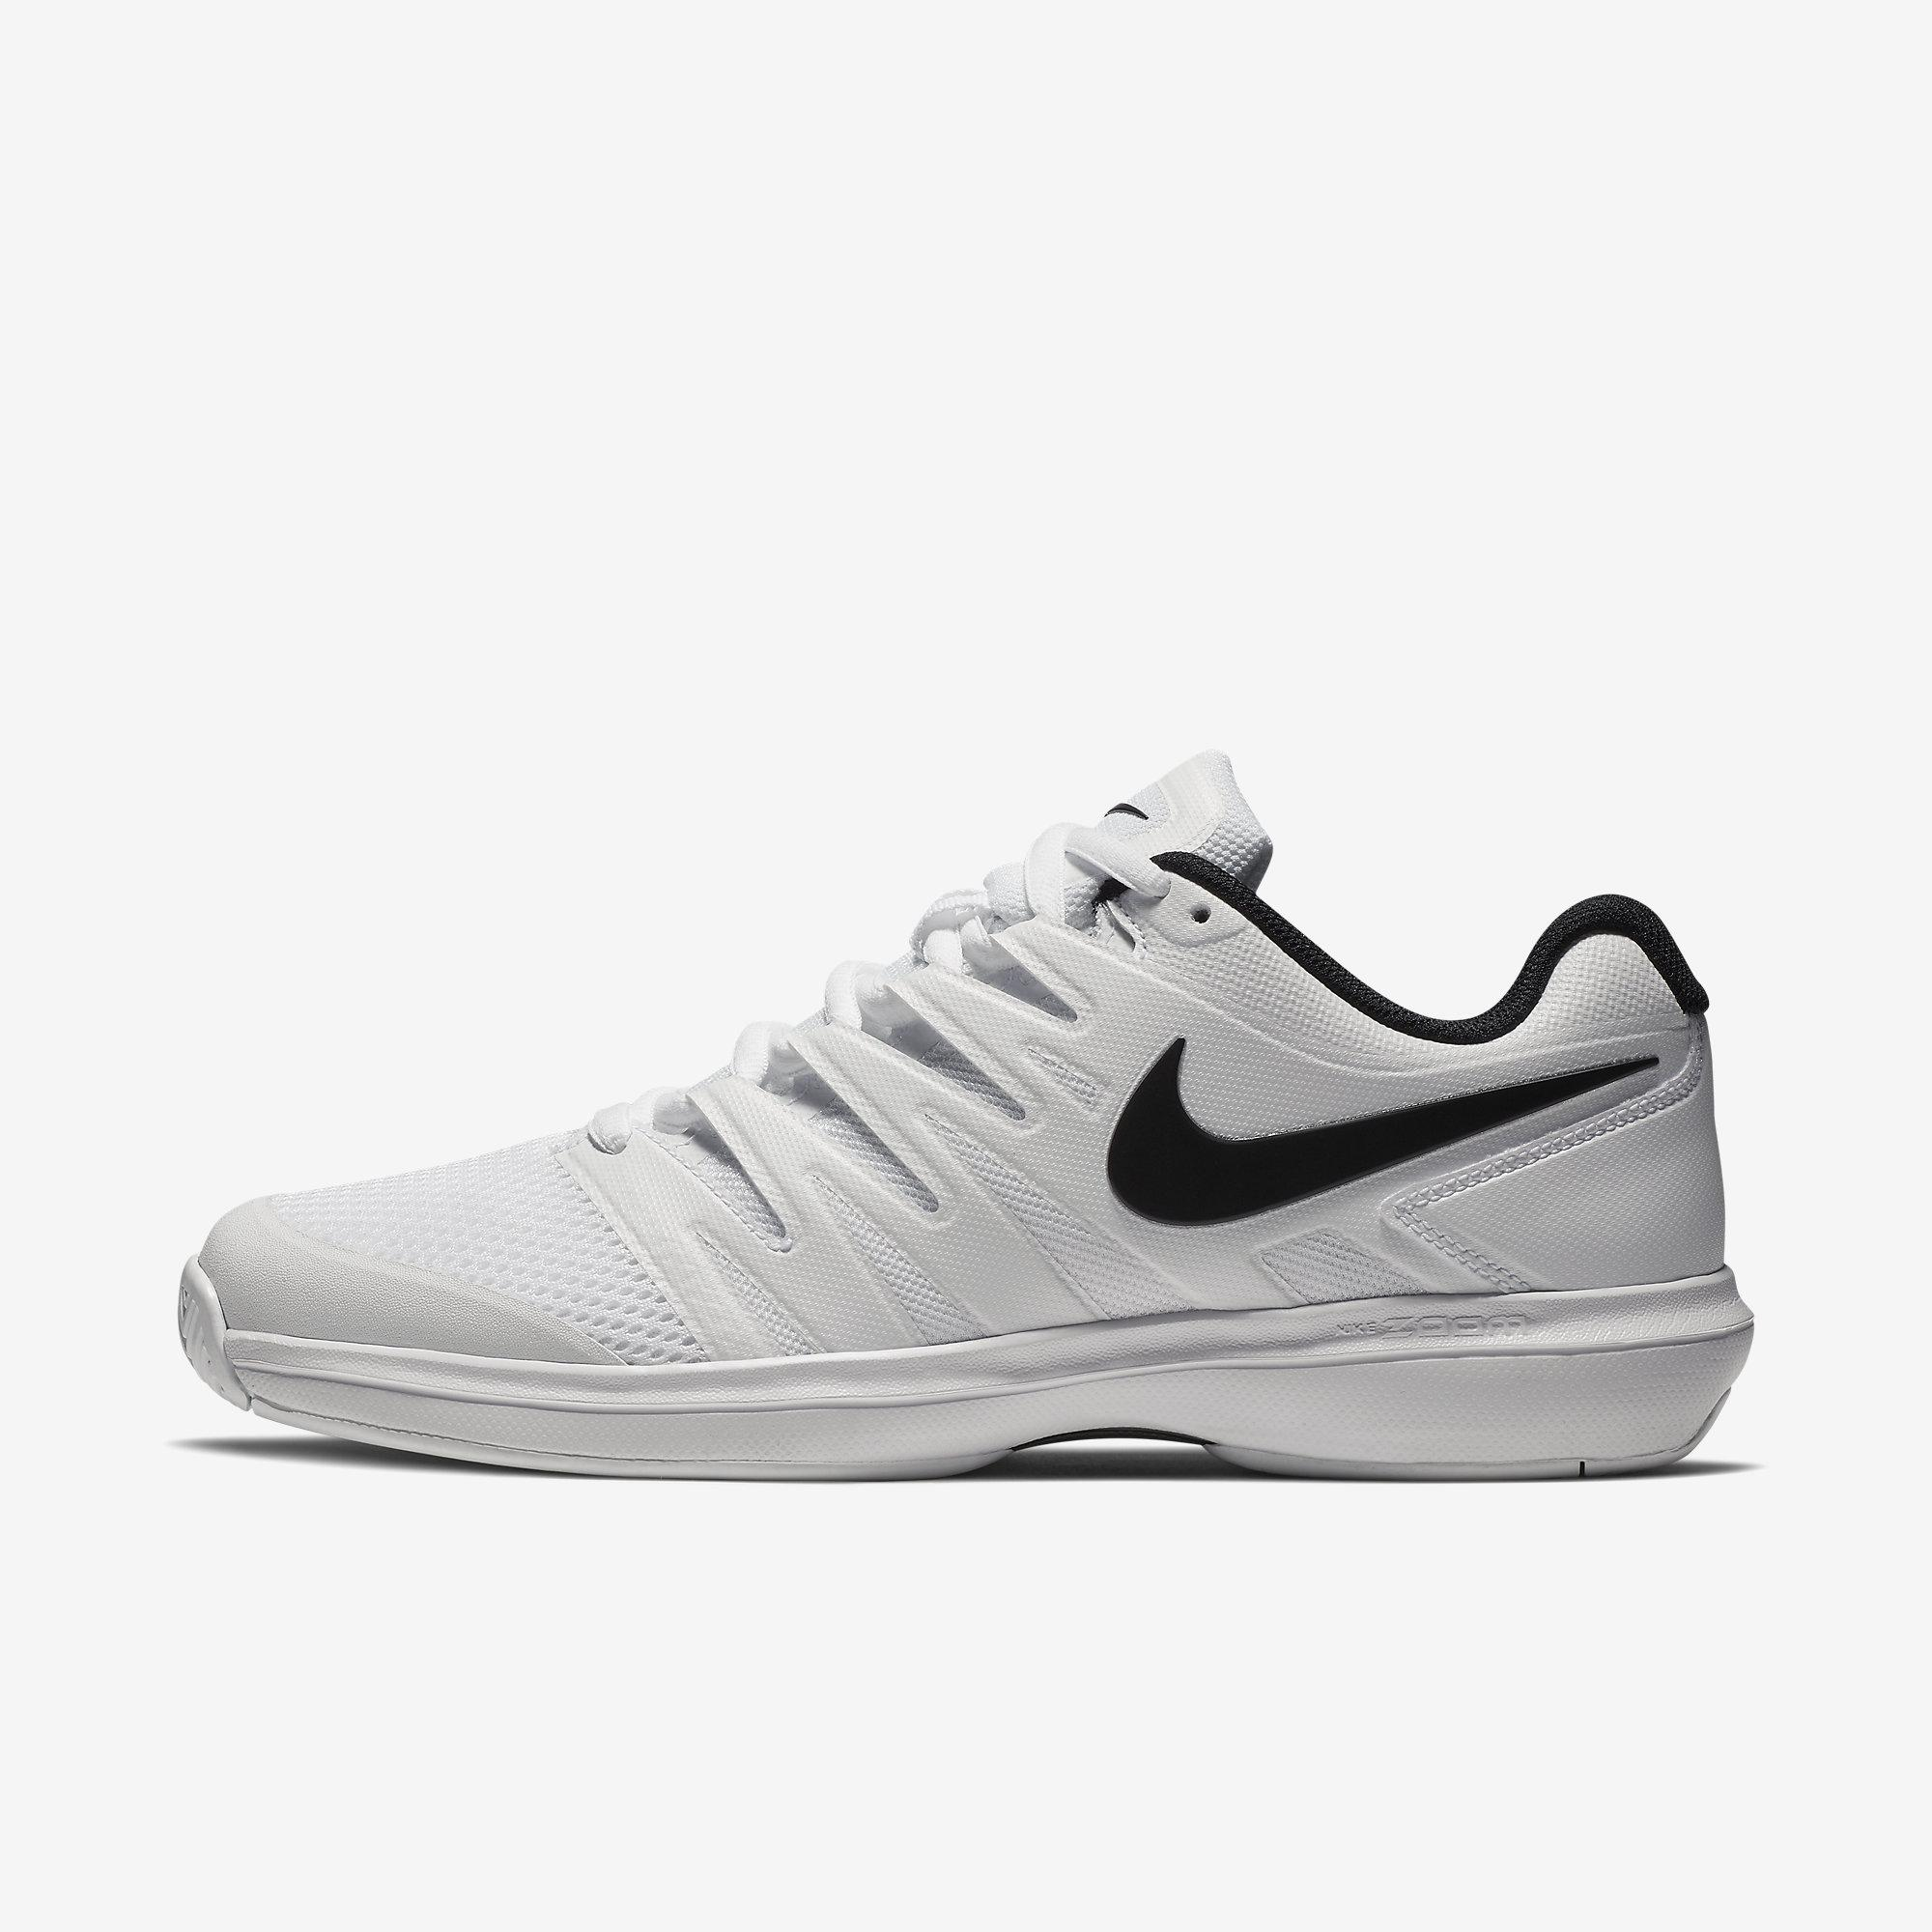 detailed look 4a4ad 43121 Nike Mens Air Zoom Prestige Tennis Shoes - White Black - Tennisnuts.com